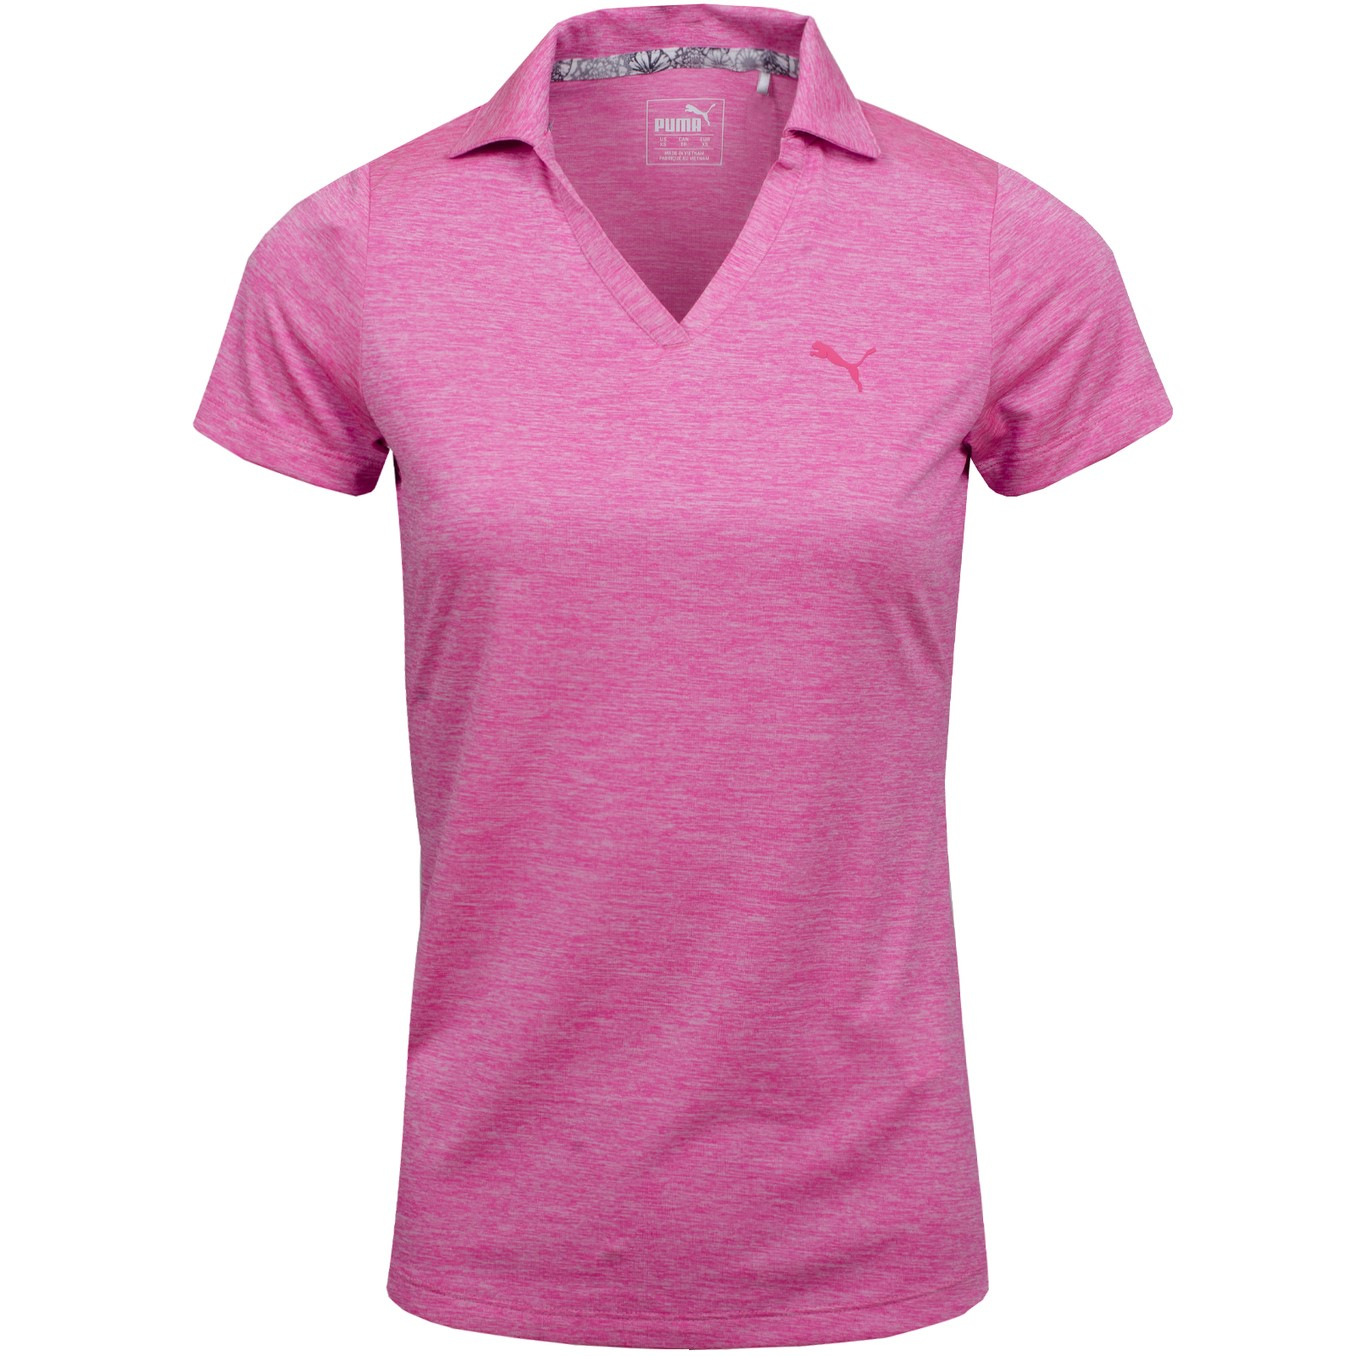 https://linkinggolf.com/ao-golf-nu-puma-t-shirt-polo-f-purple-hearther-a150